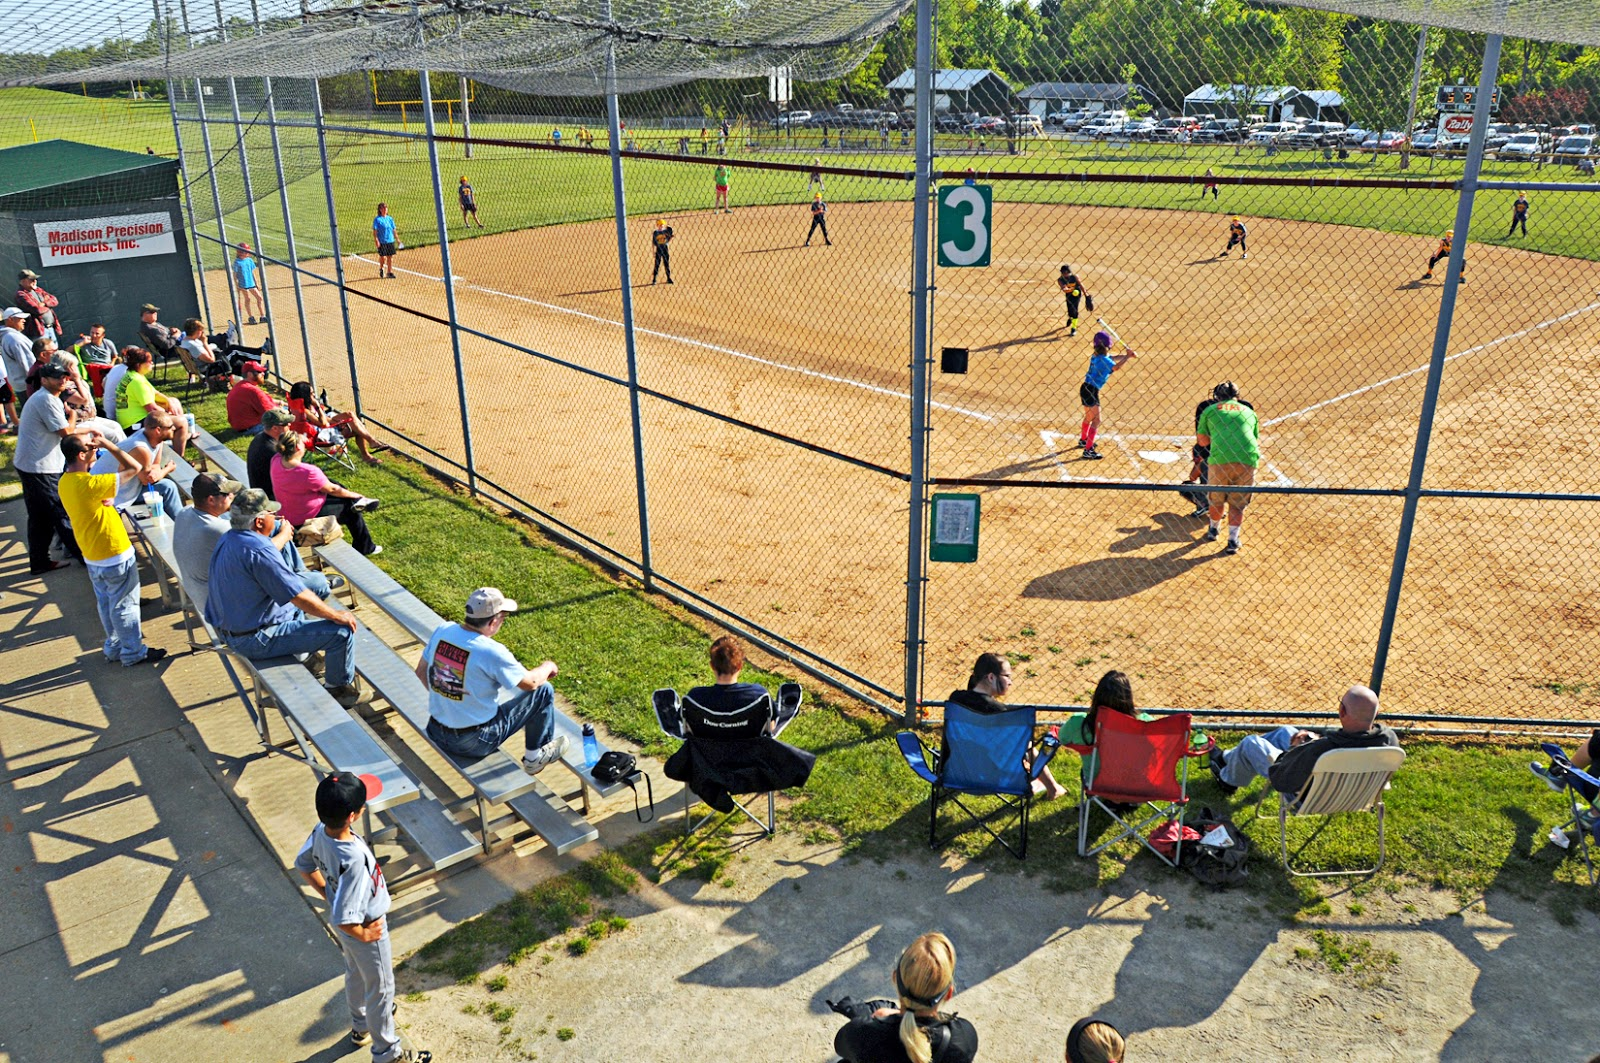 families and other spectators watch the action on the field at rucker s sports complex on opening day of the city s little league season on monday